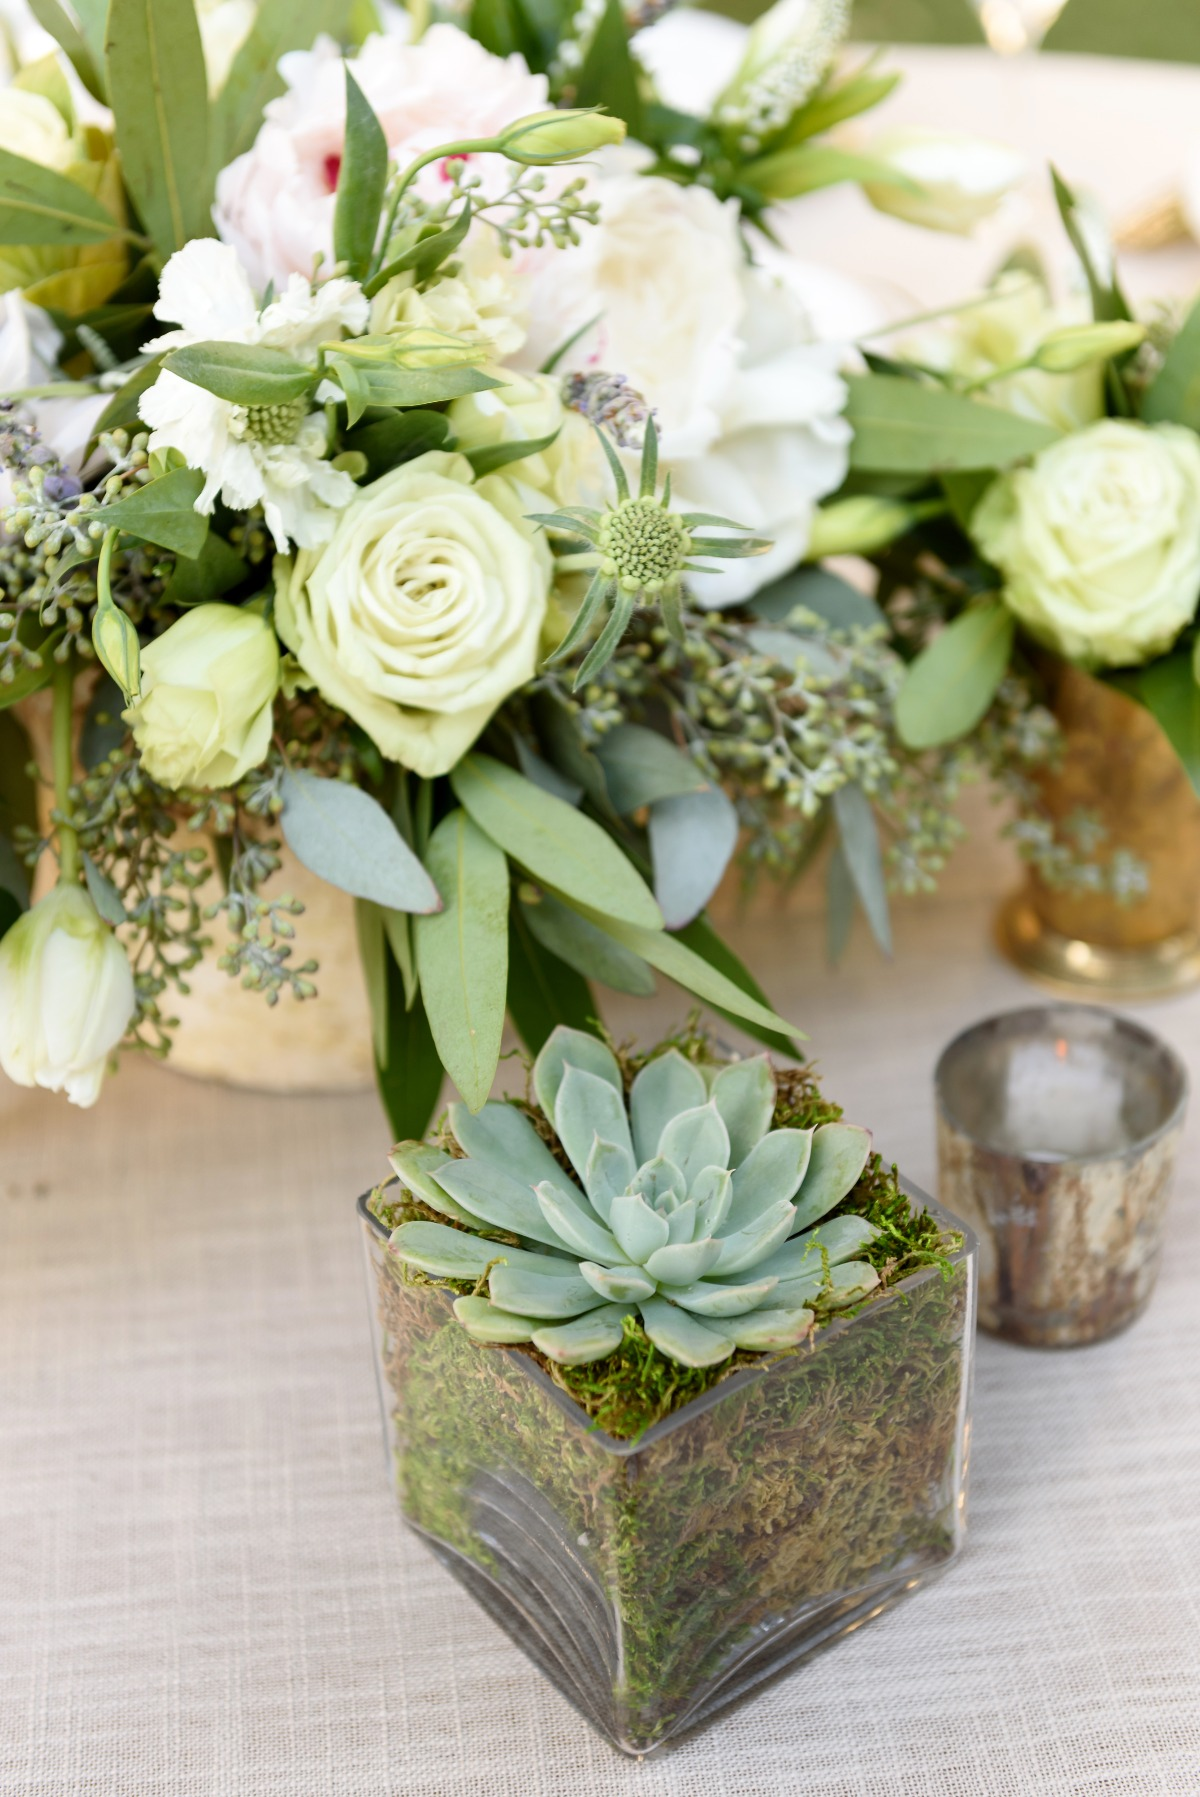 Tips for Being Eco-Conscious Now That Large Weddings are Returning